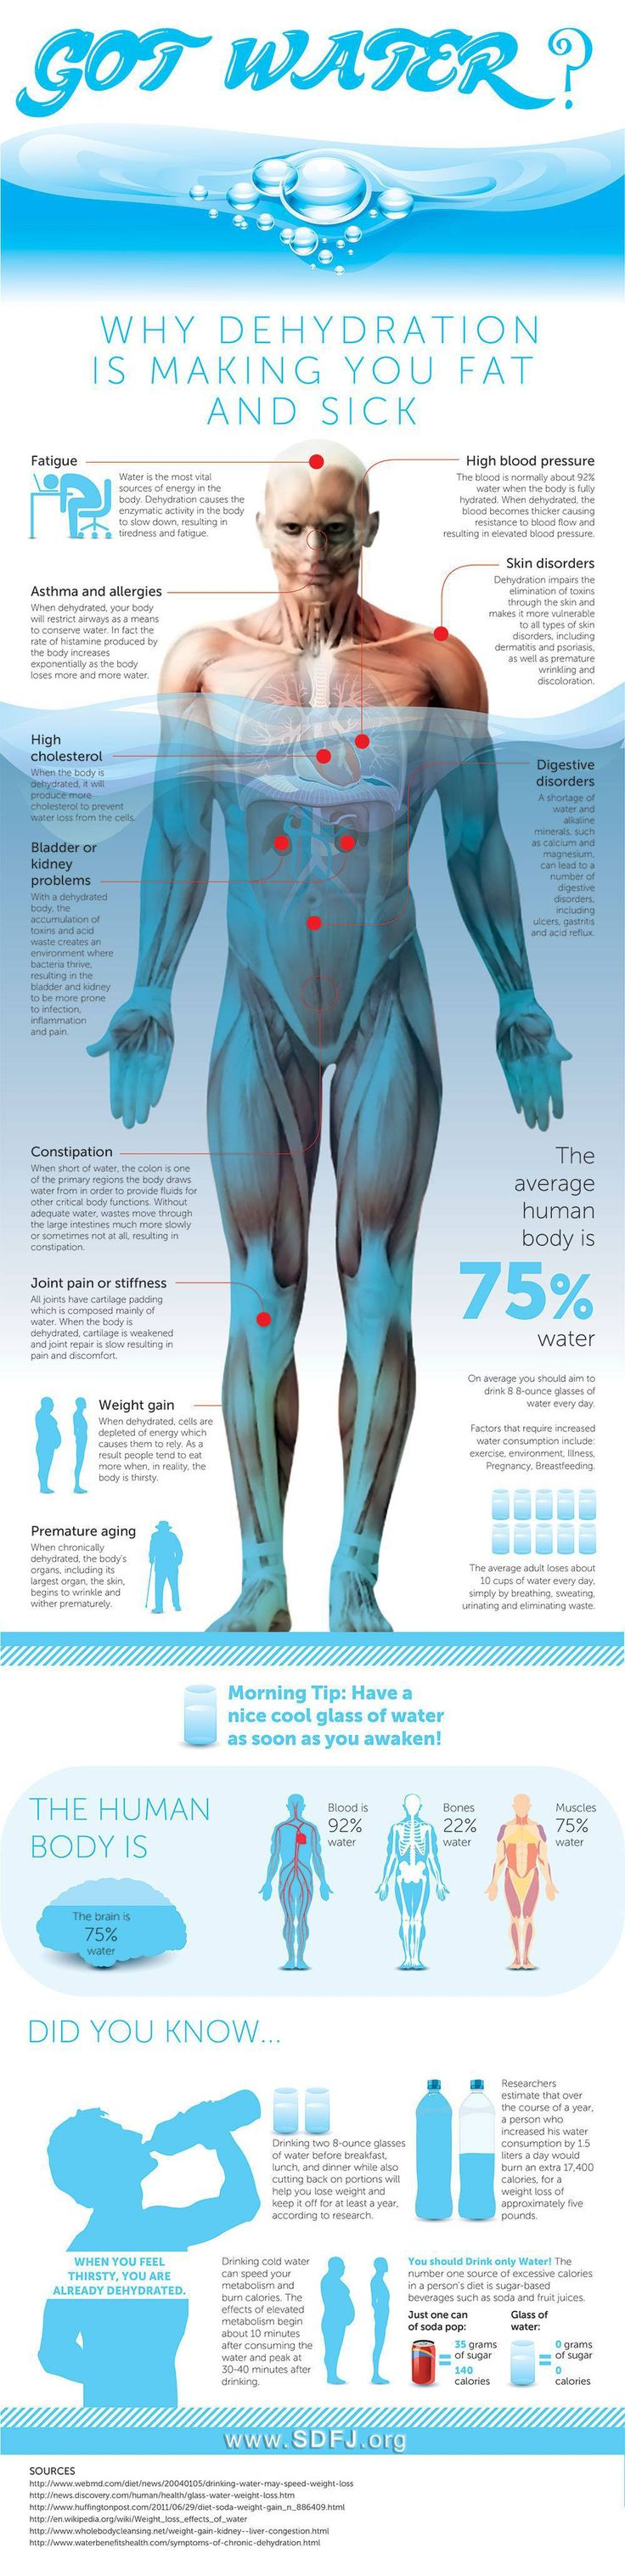 Why Dehydration is Making You Fat And Sick – InfographicLife Advancer